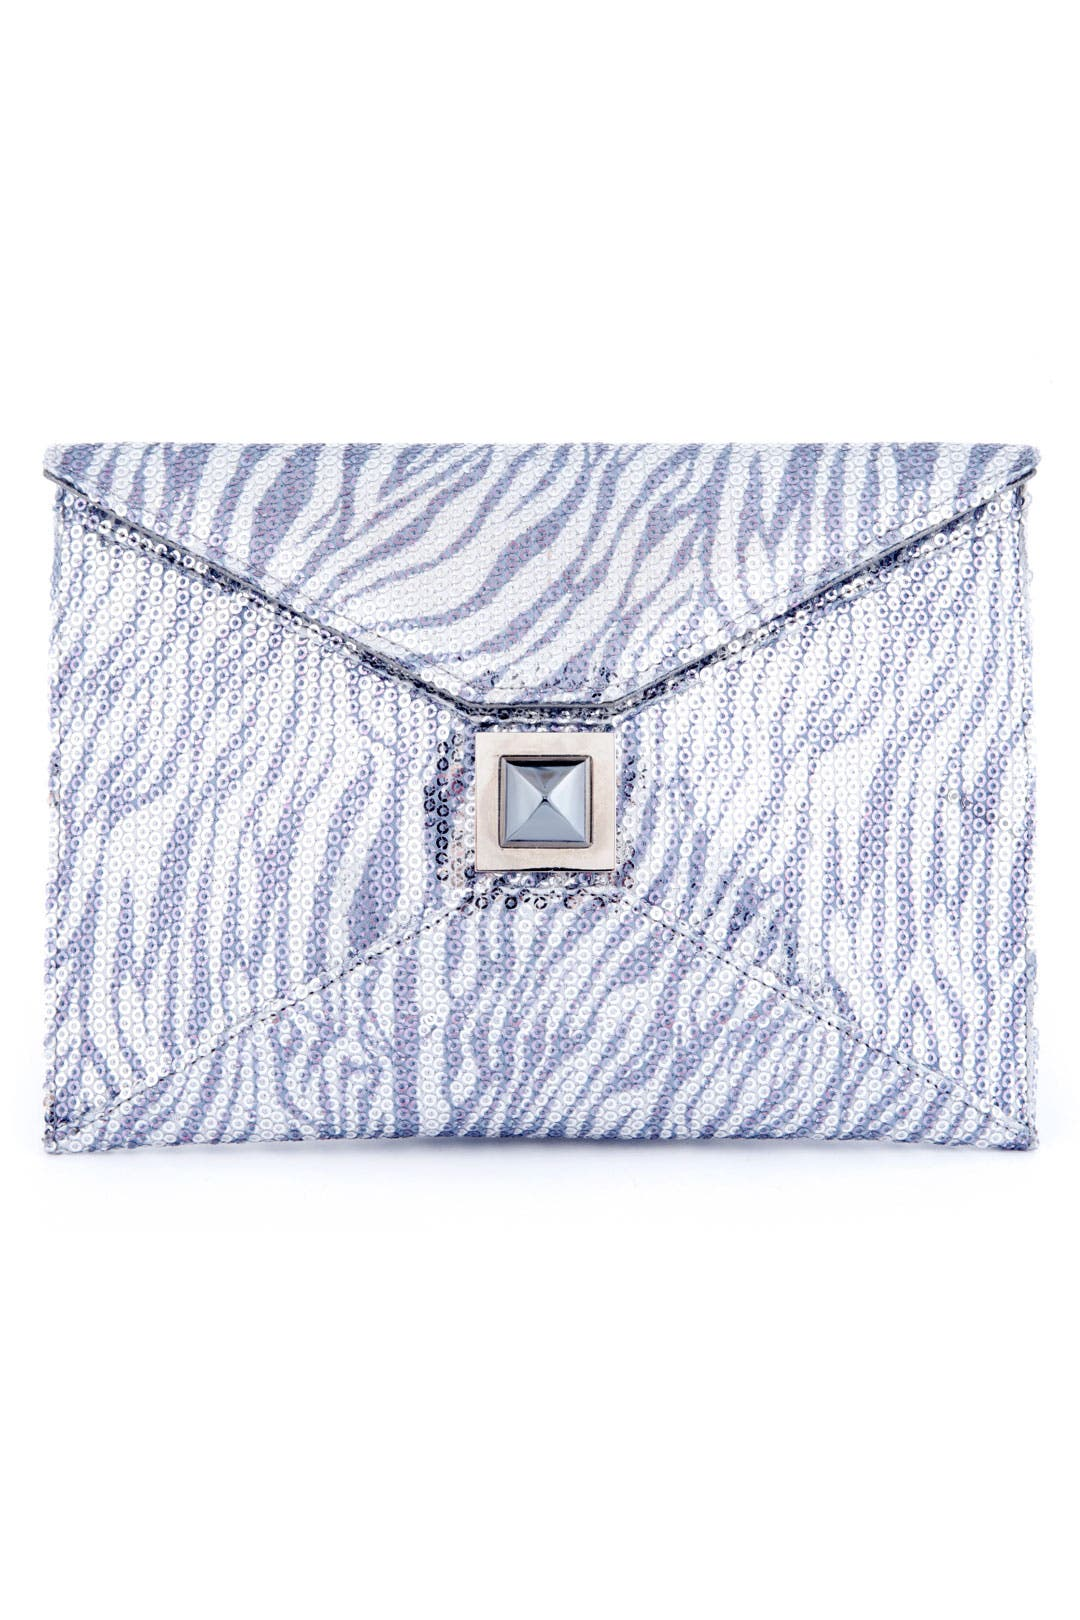 Junglicious Clutch by Kara Ross